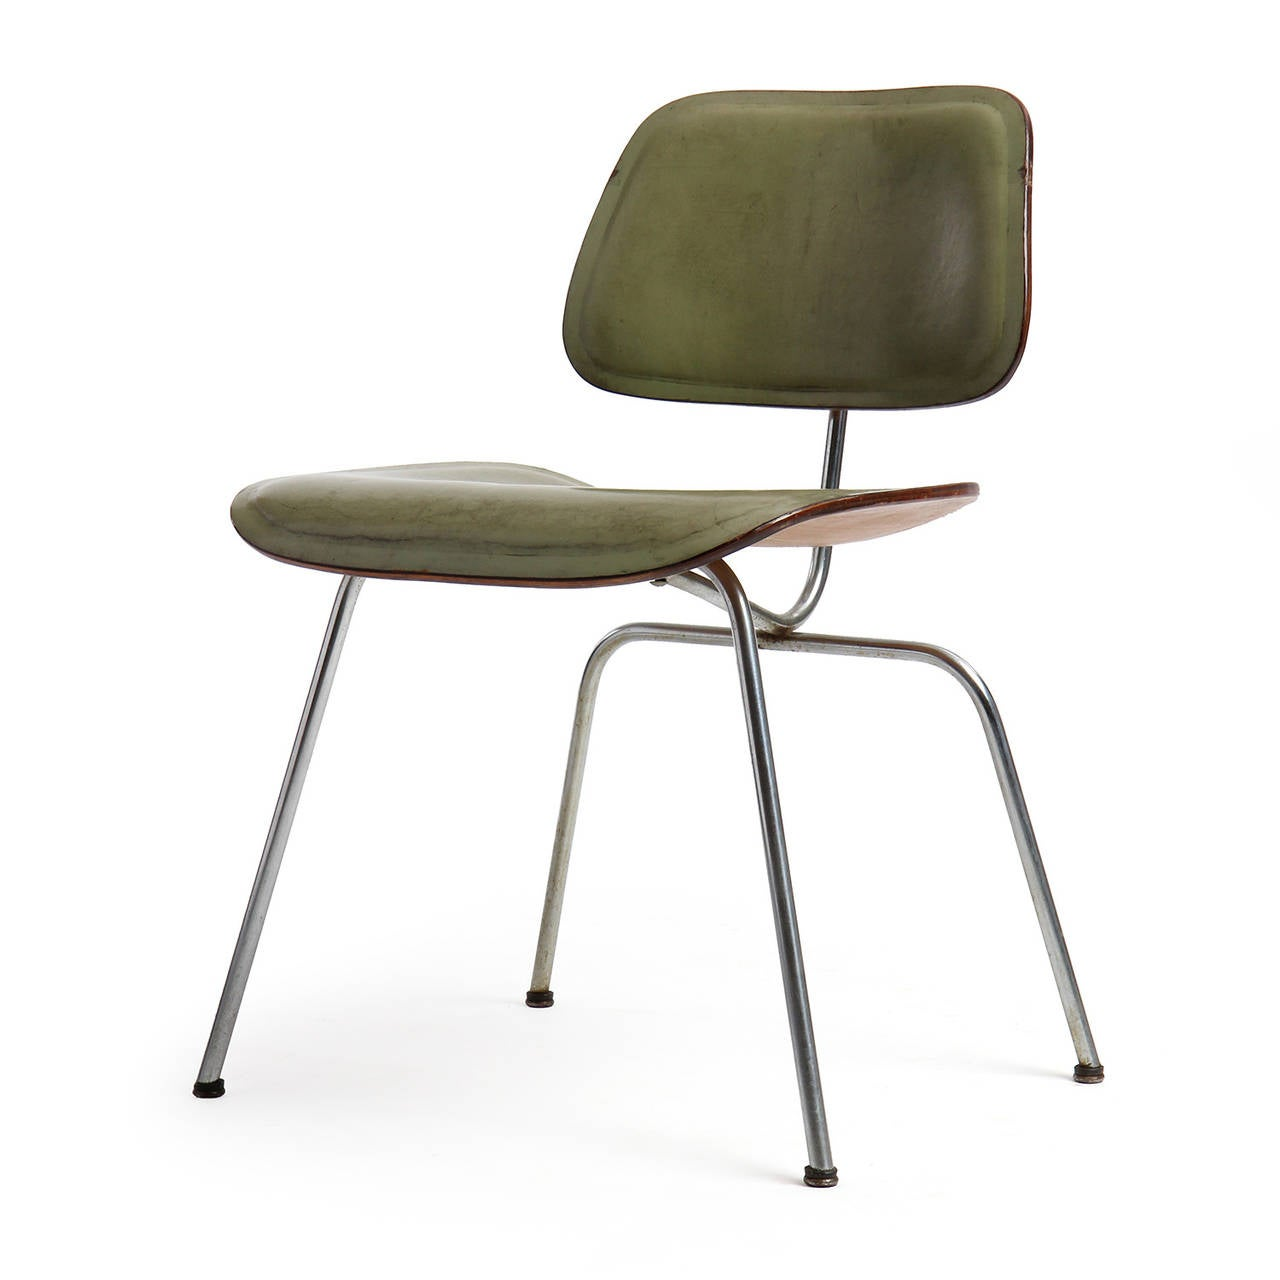 Leather dcm chair by charles and ray eames for sale at 1stdibs for Leather eames dining chair